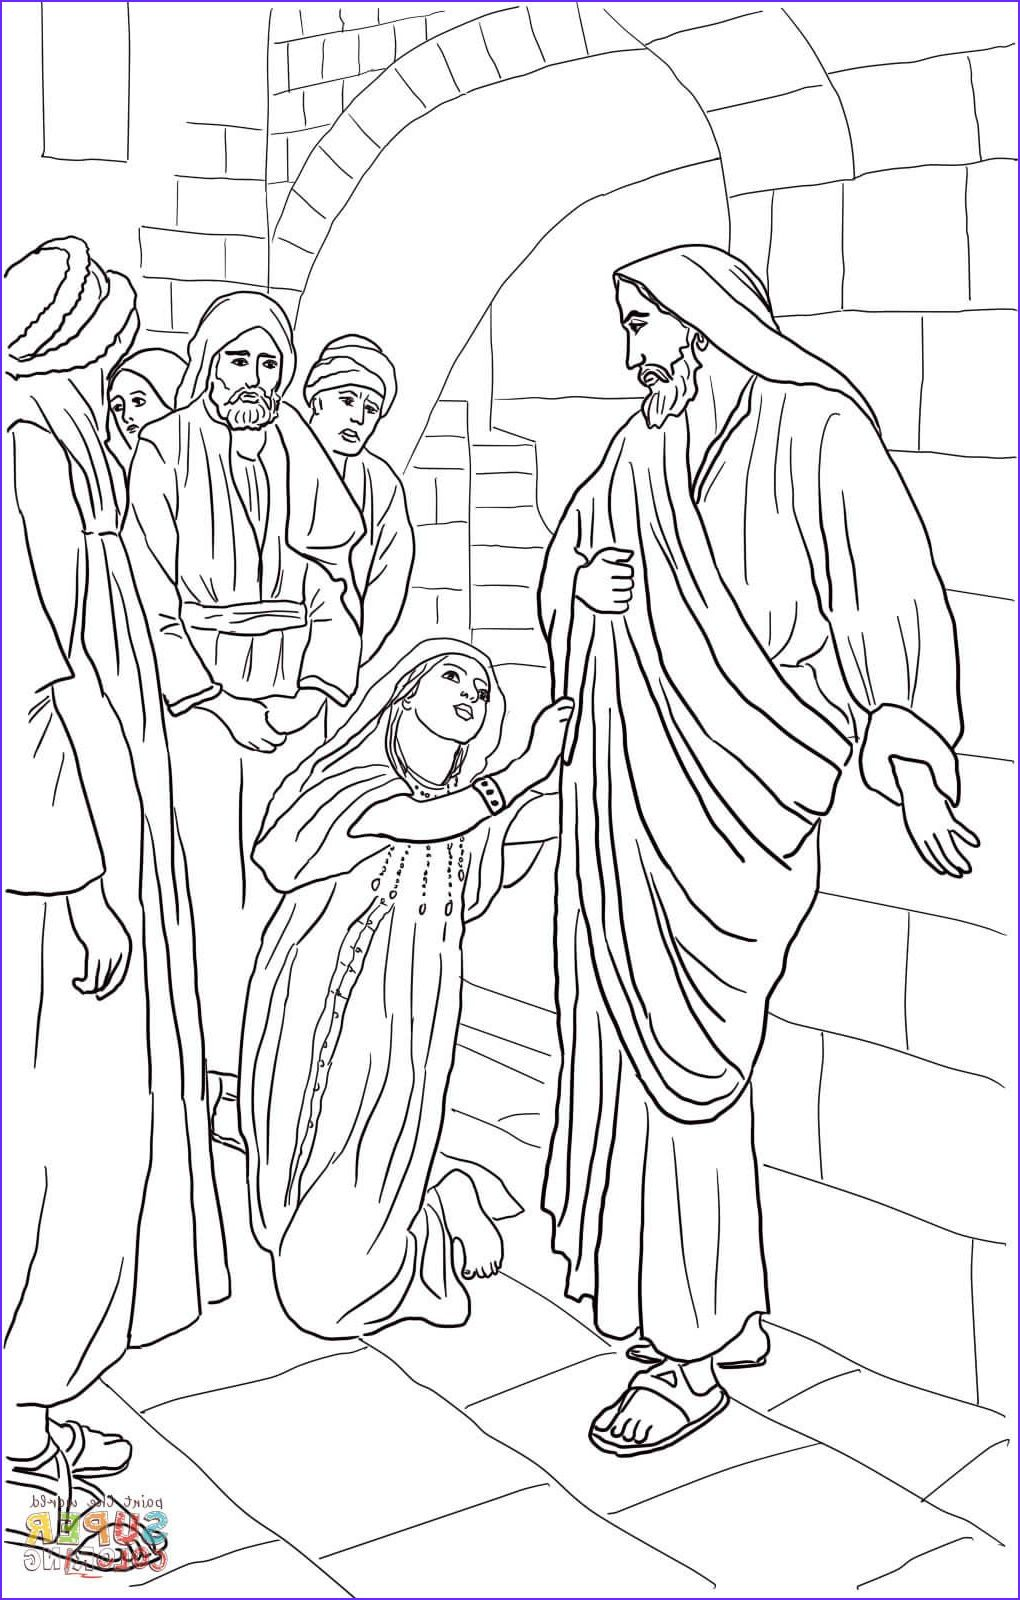 Coloring Book Excelent Printable Pages Bible Stories Free Story ... | 1600x1020